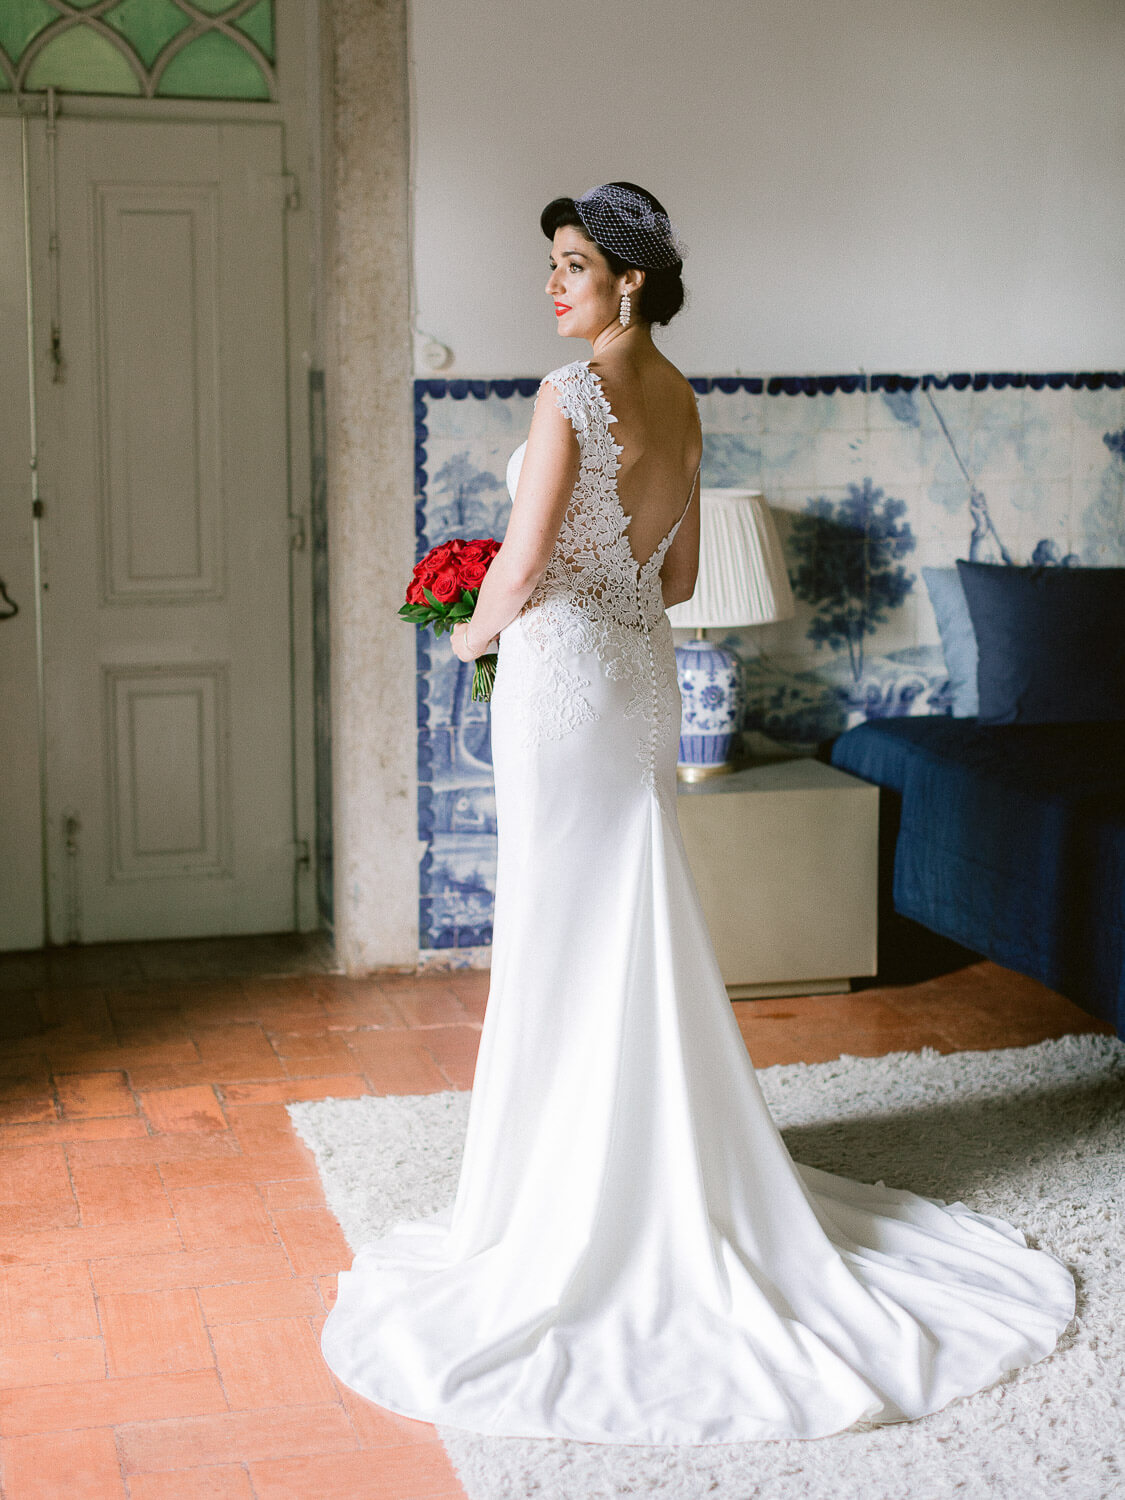 Bride with embroidered plunging back wedding dress and red roses bouquet by Portugal Wedding Photographer